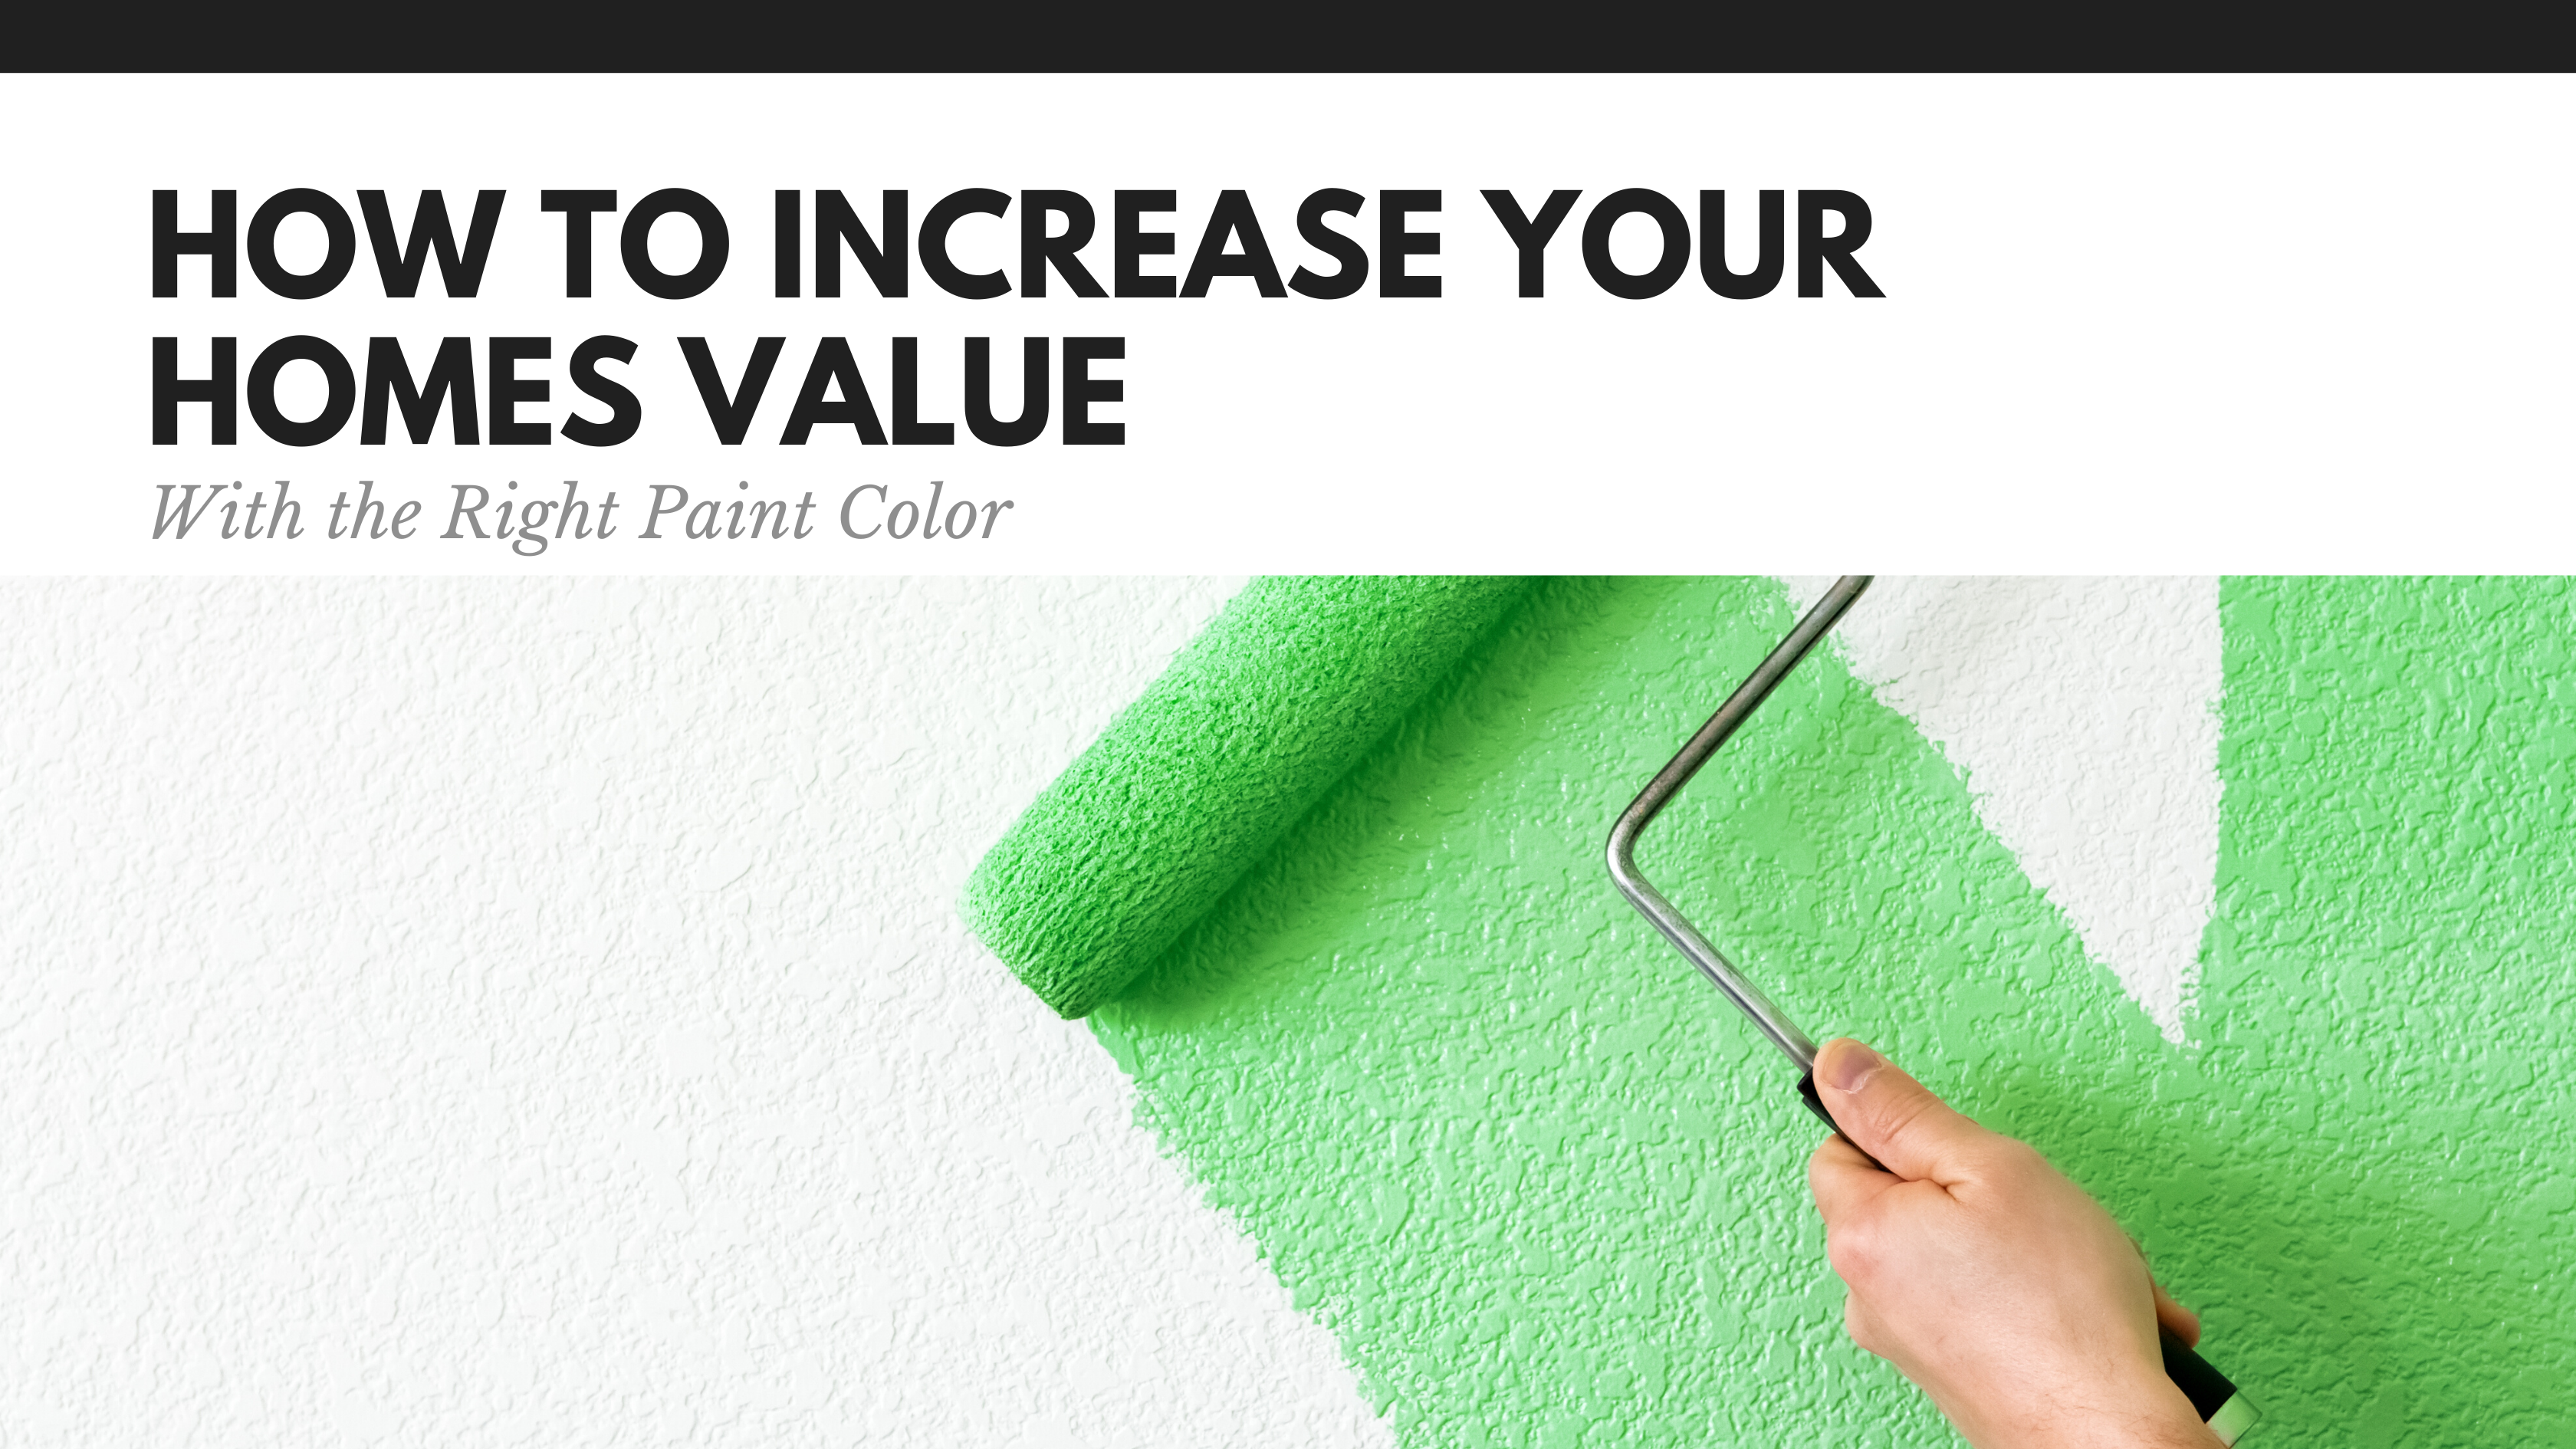 increase your home's value with the right paint